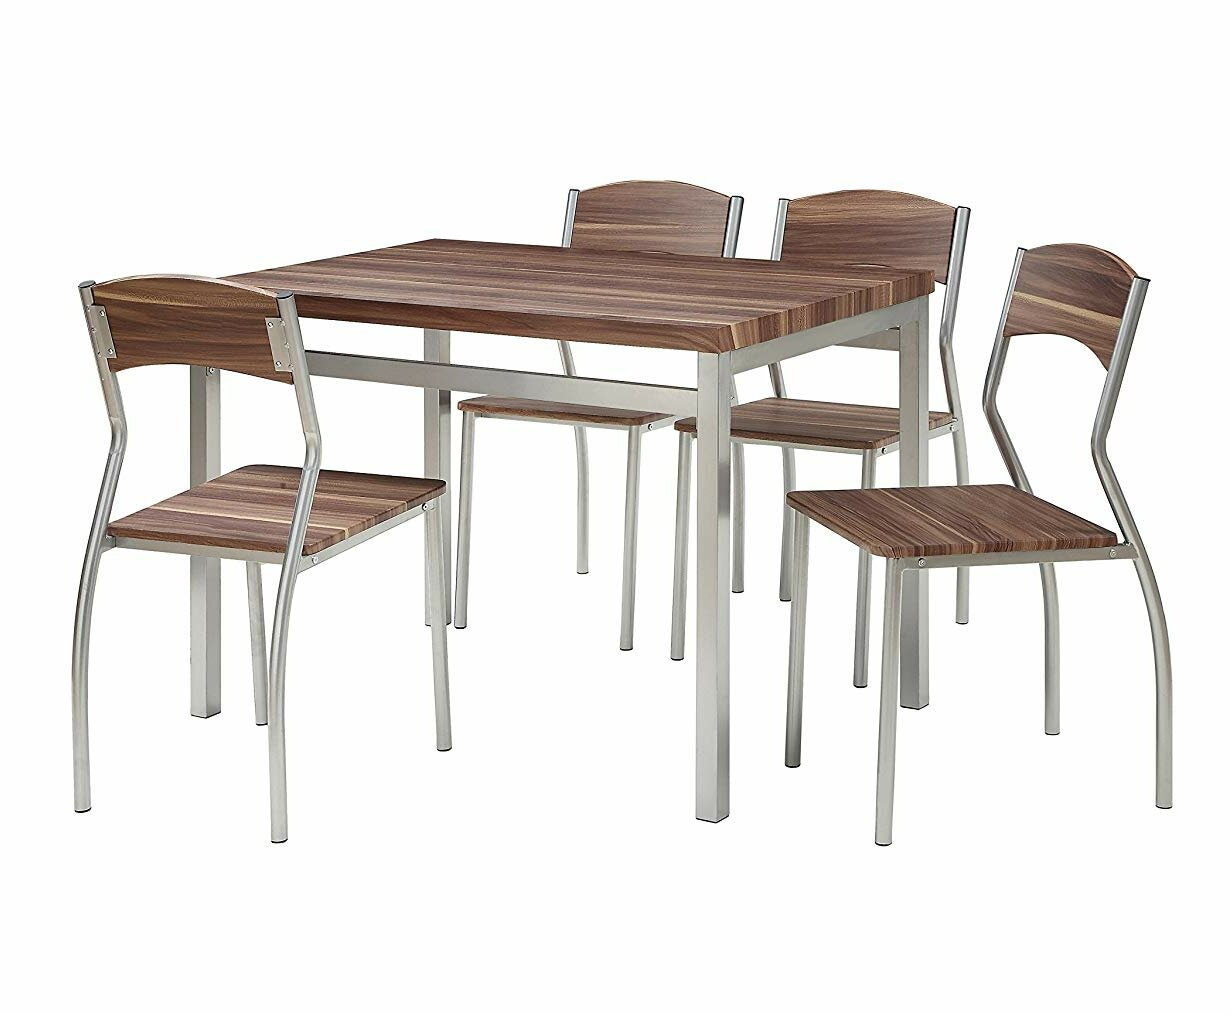 Kaelin 5 Piece Dining Set In Most Up To Date Rarick 5 Piece Solid Wood Dining Sets (Set Of 5) (Image 9 of 20)